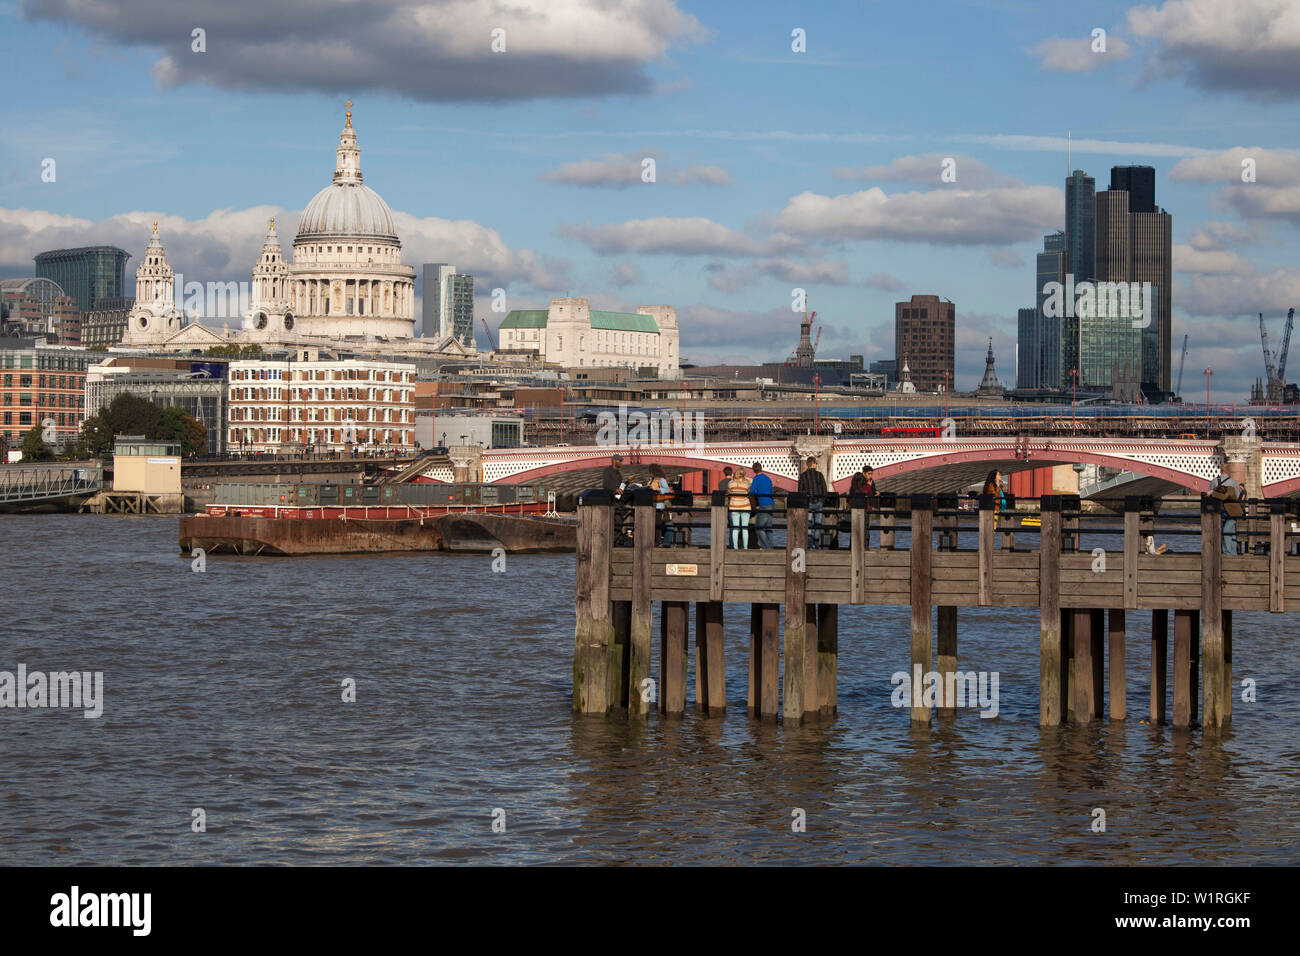 St Pauls cathedral and the city of London from the southbank, London,uk - Stock Image